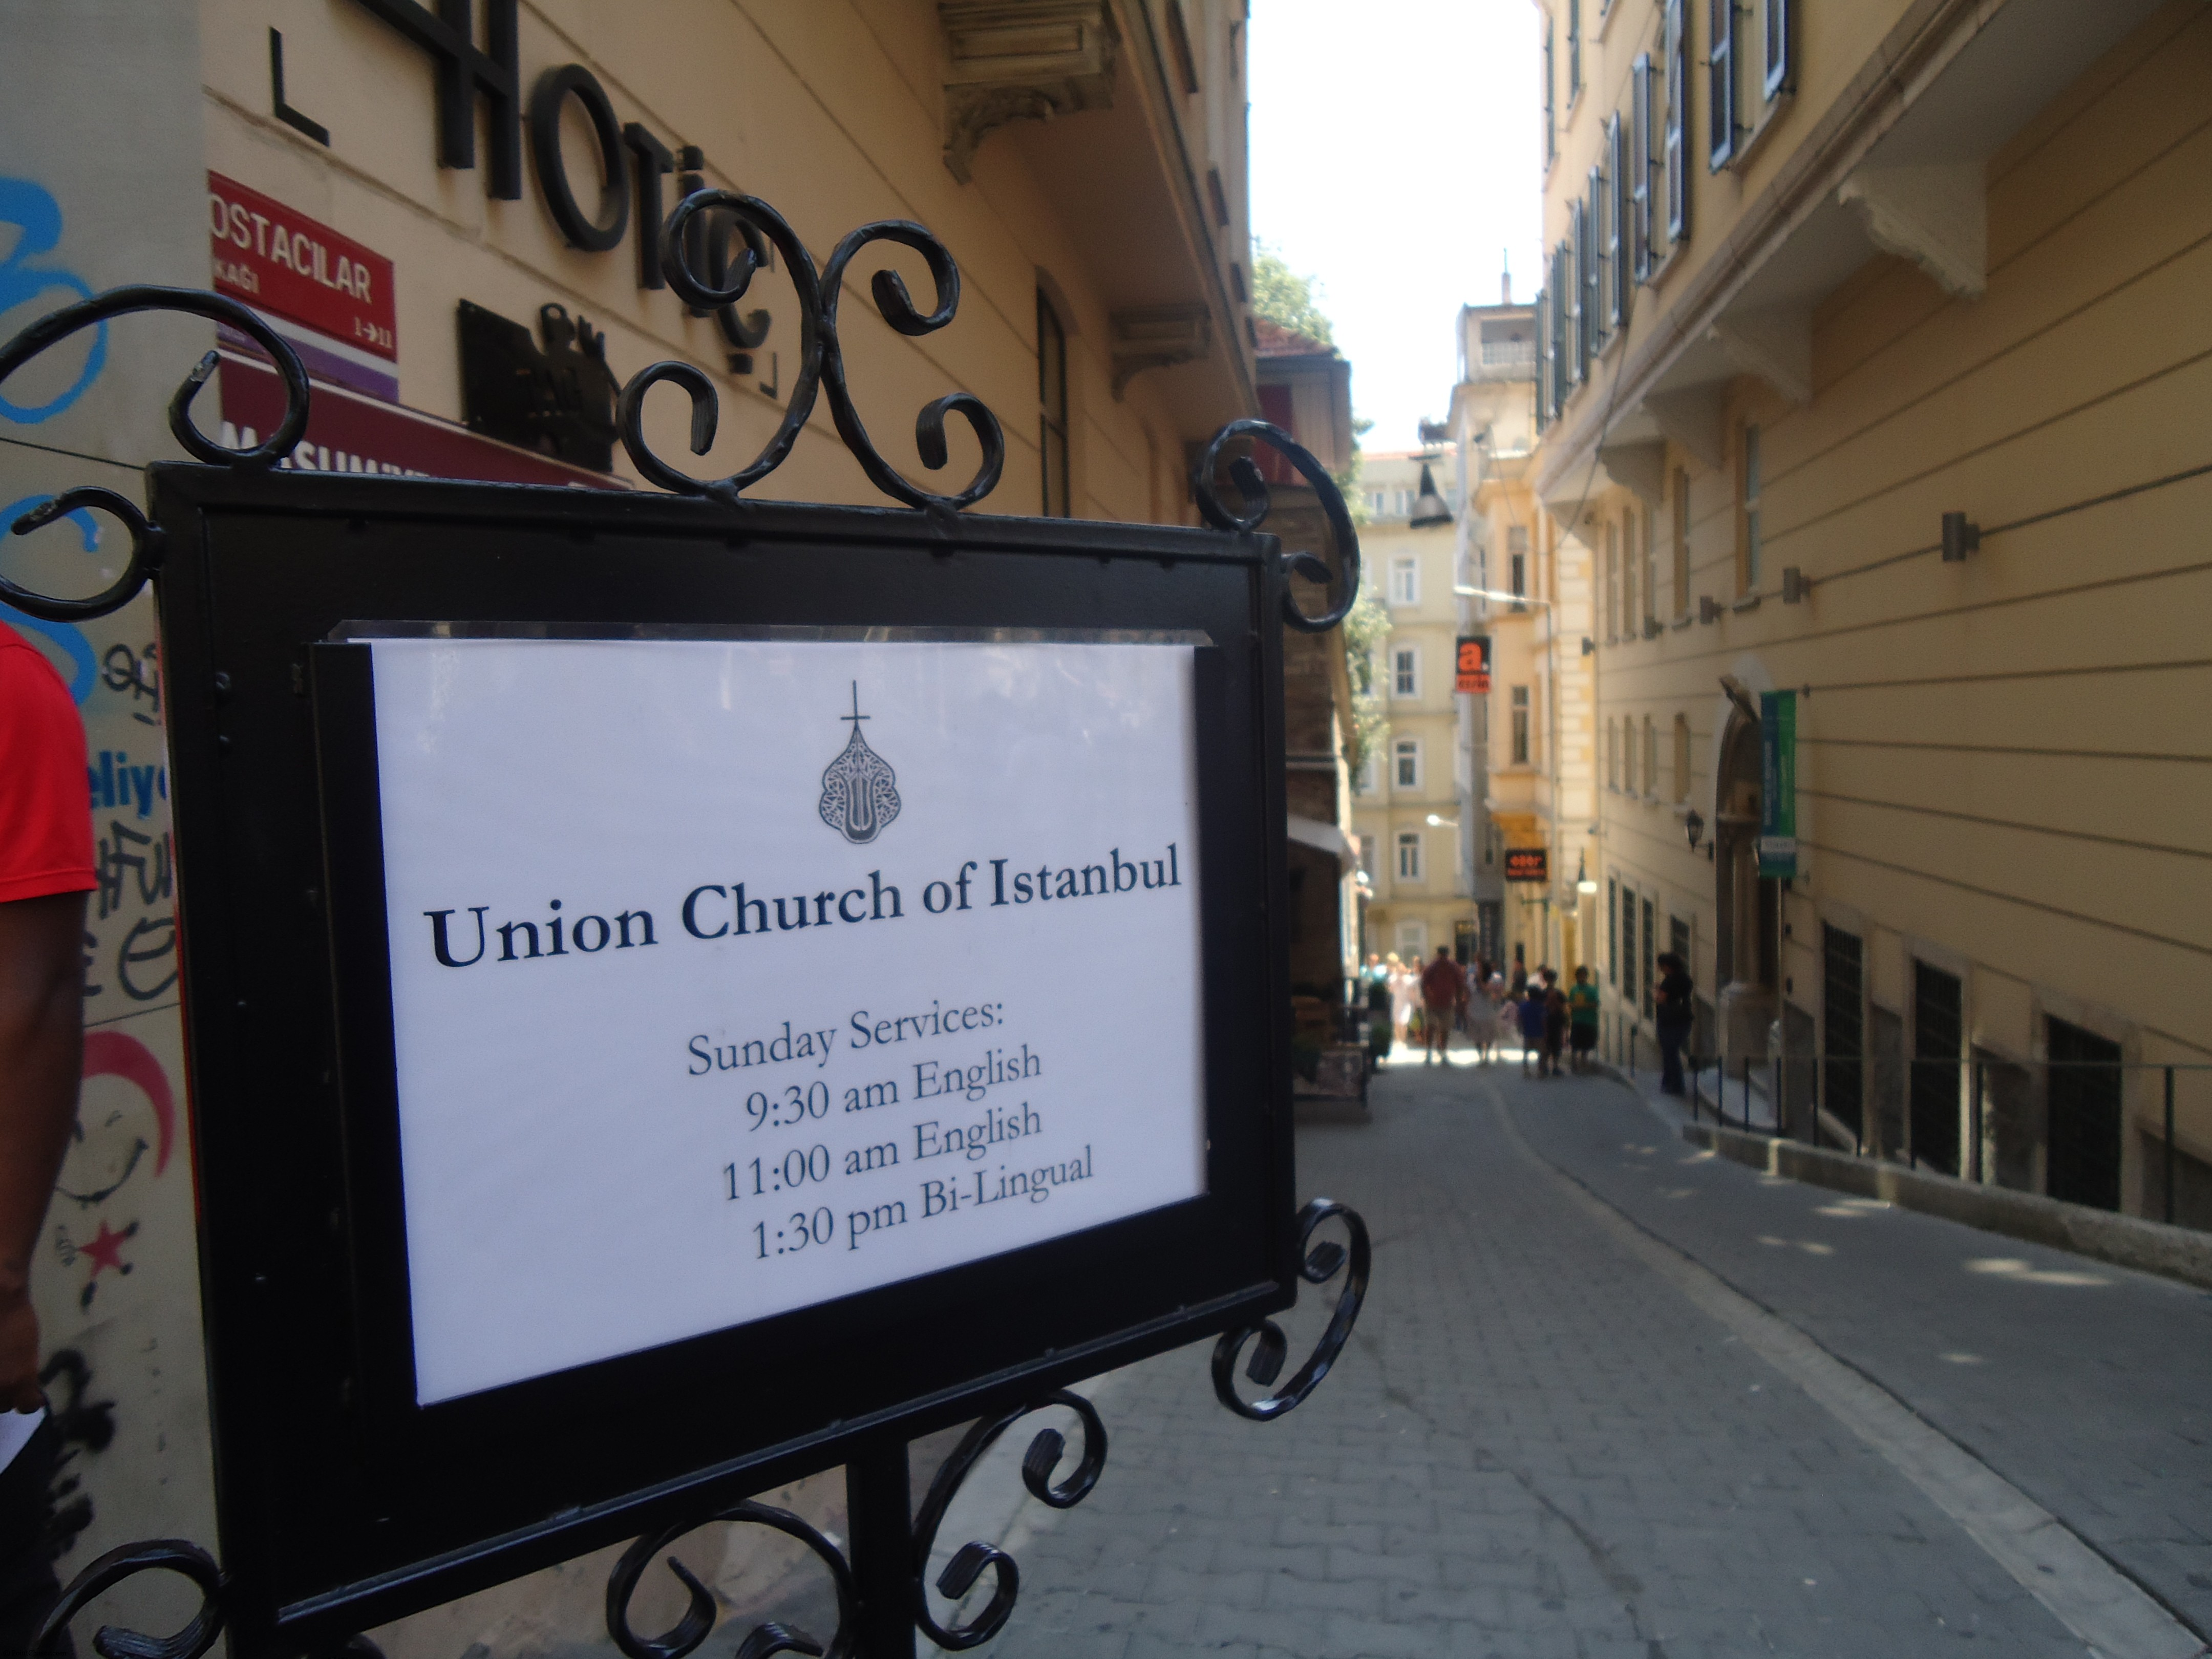 Union Church of Istanbul